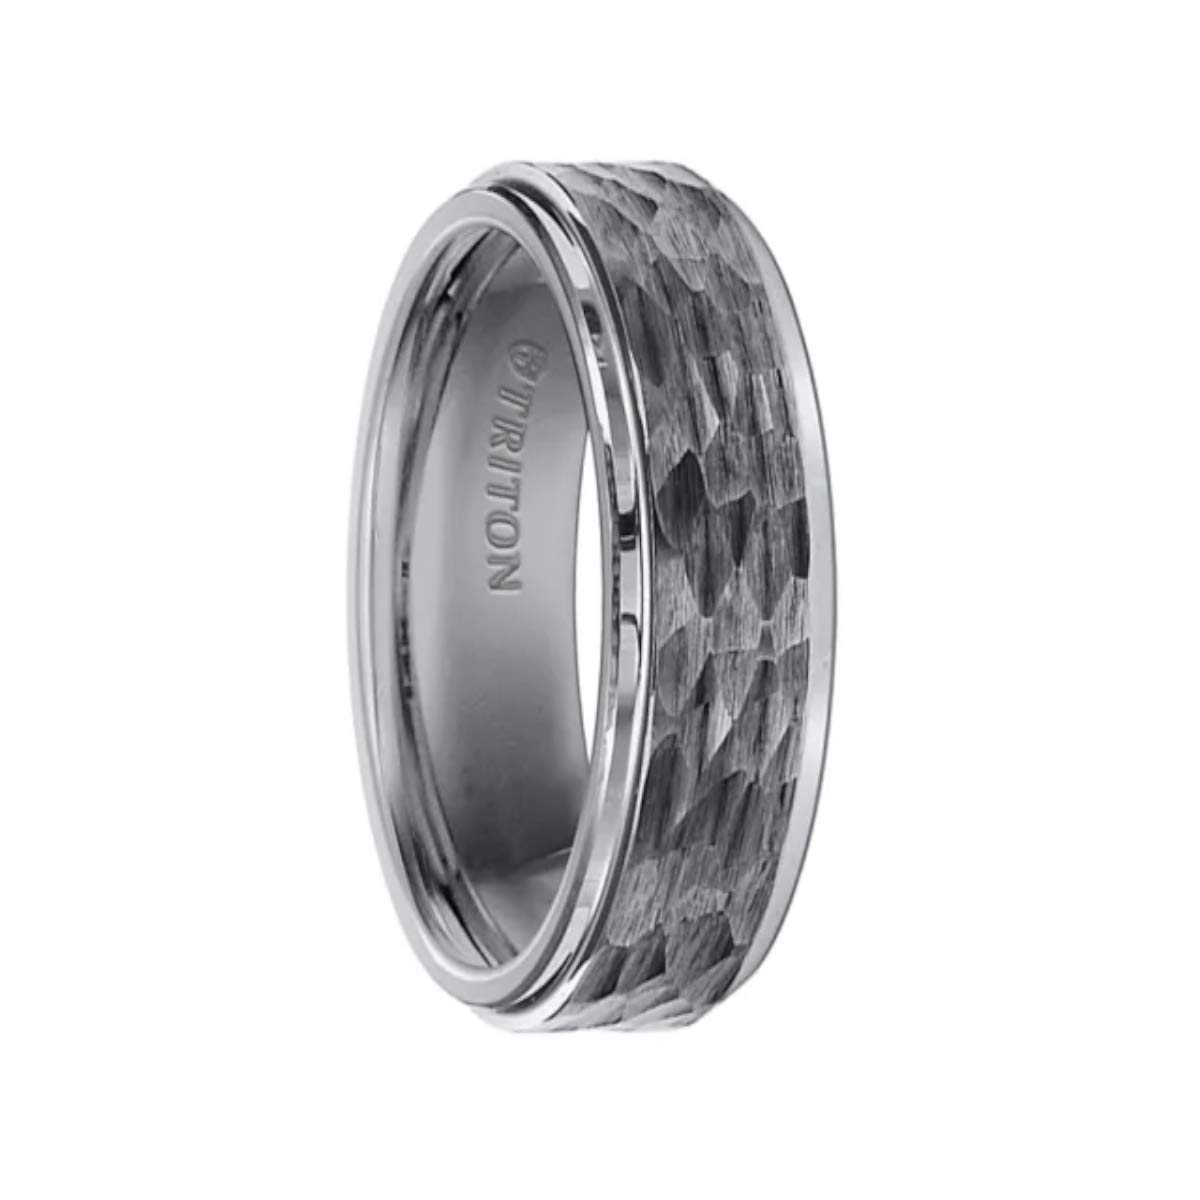 Triton Ring Tungsten Carbide Step Edge Comfort Fit Band with Center Hammered Texture